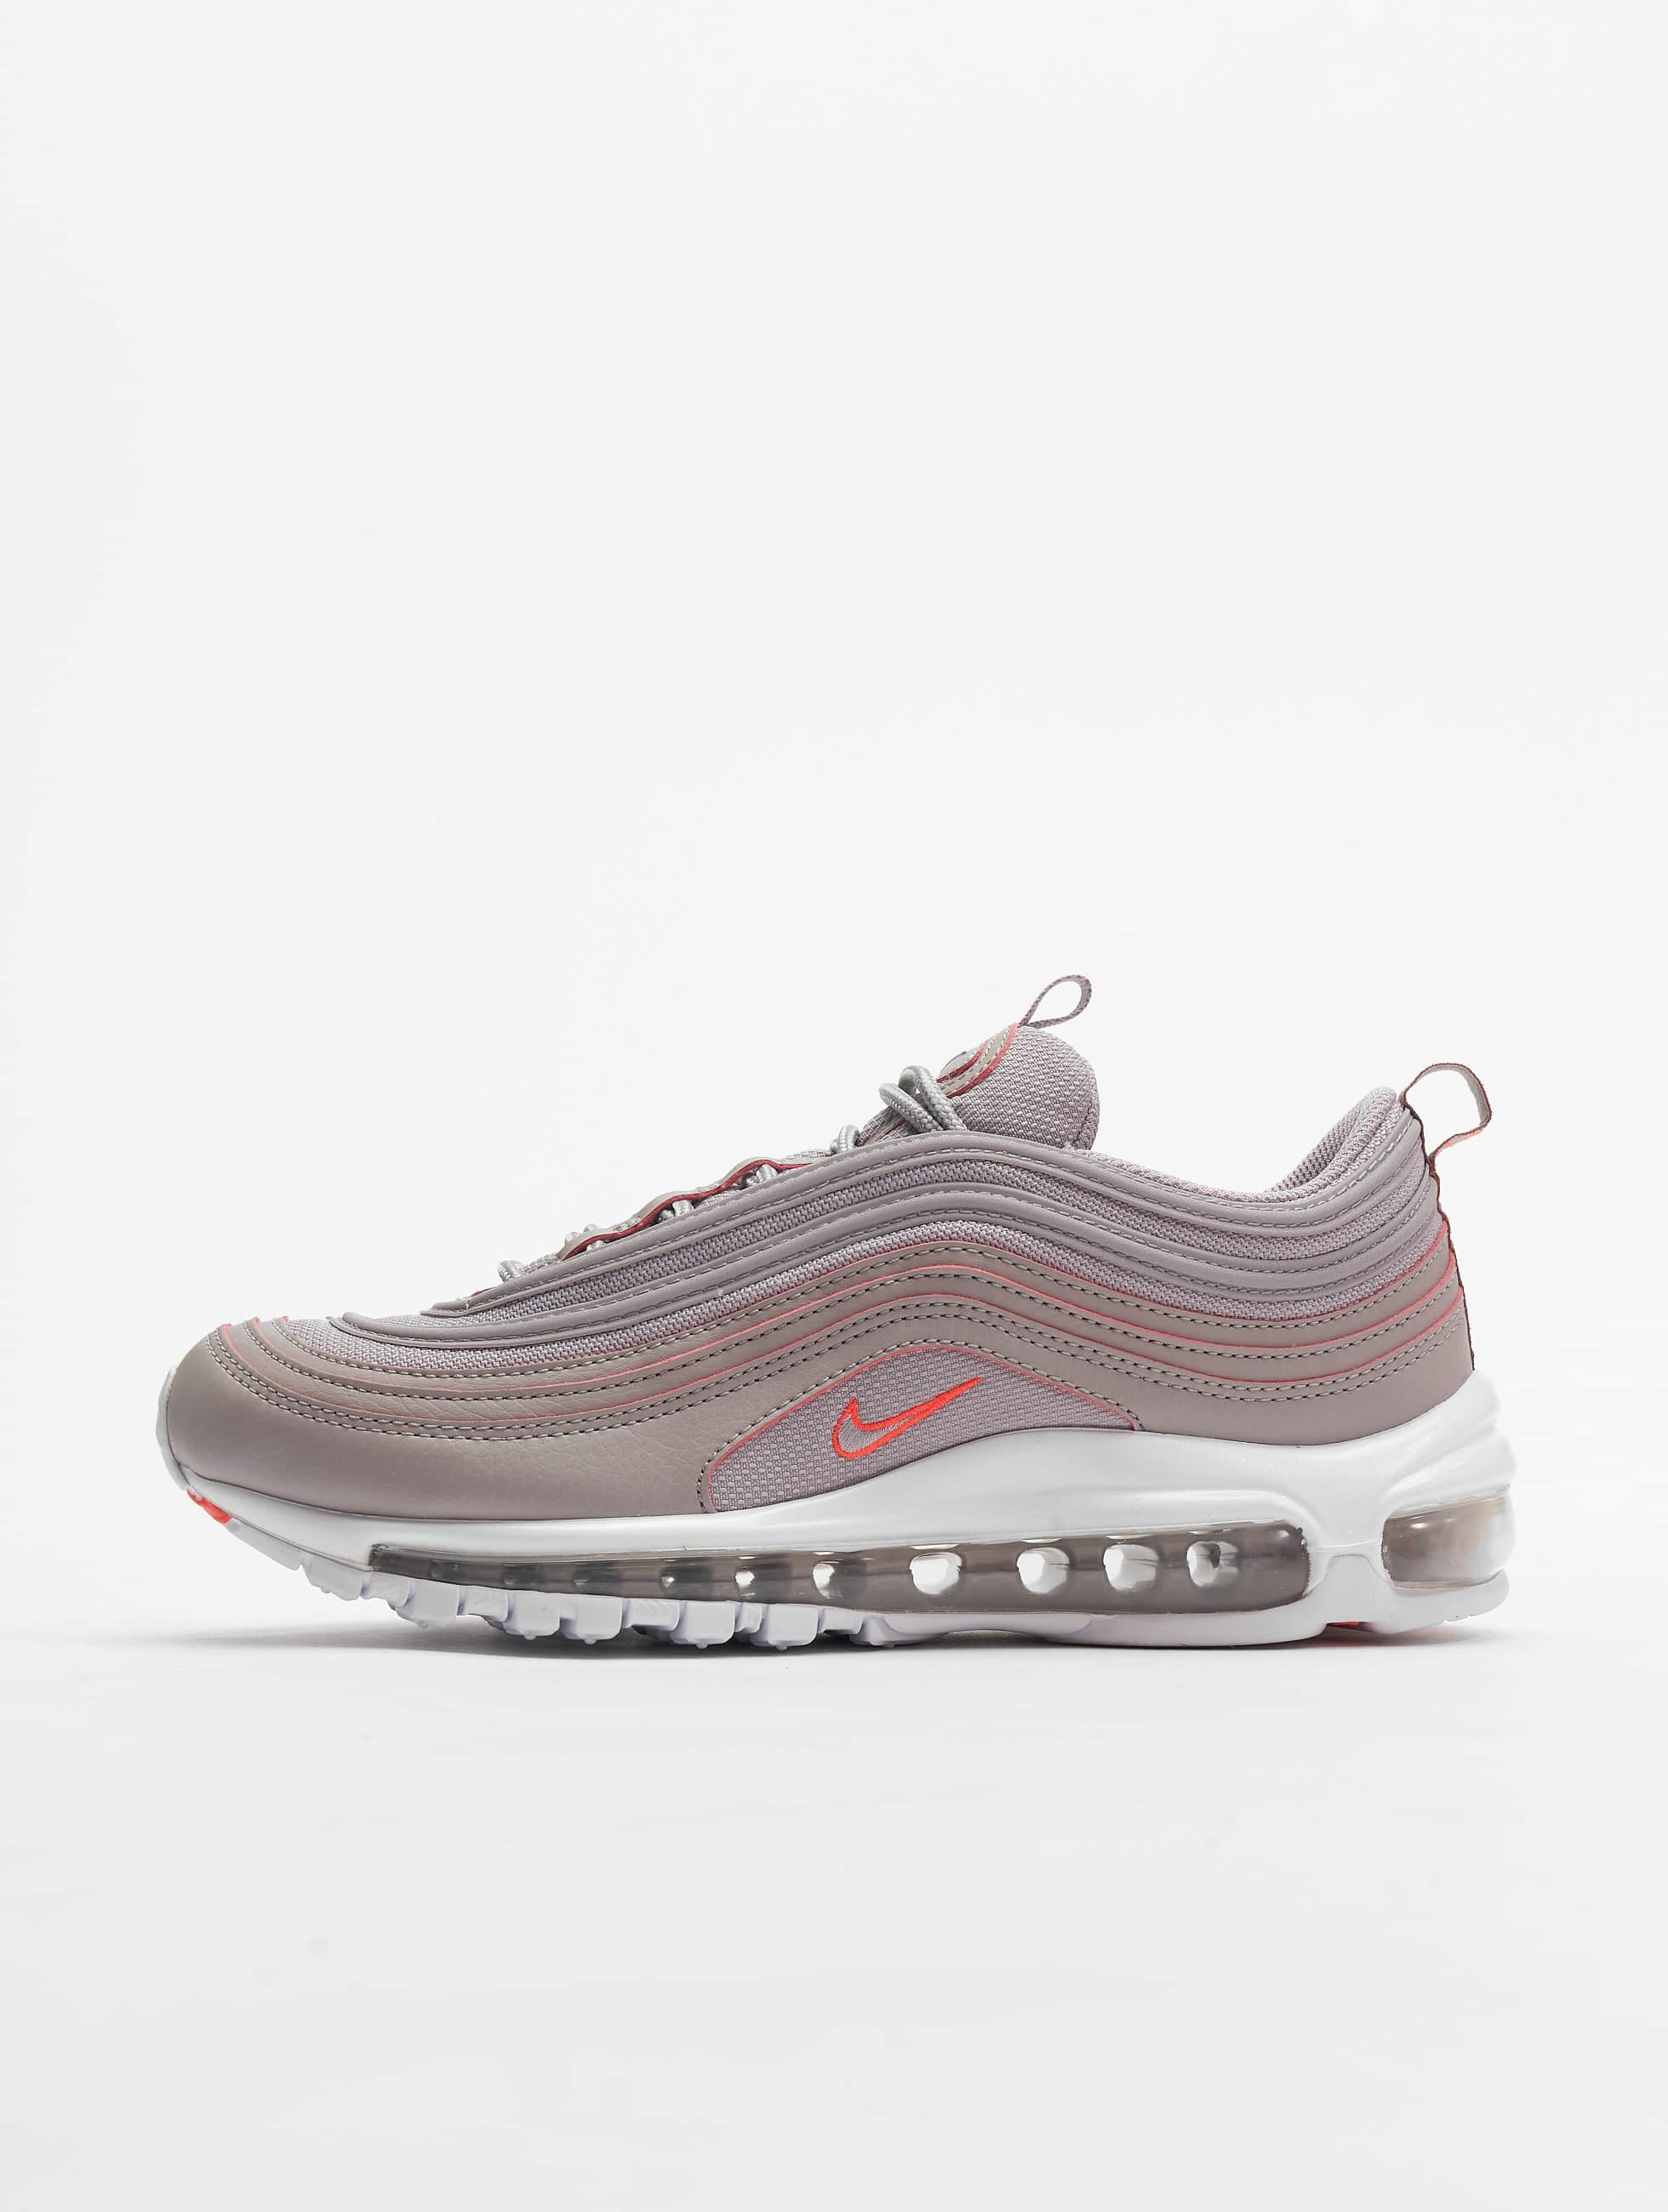 Nike Air Max 97 Se Sneakers Atmosphere GreyBright CrimsonWhite